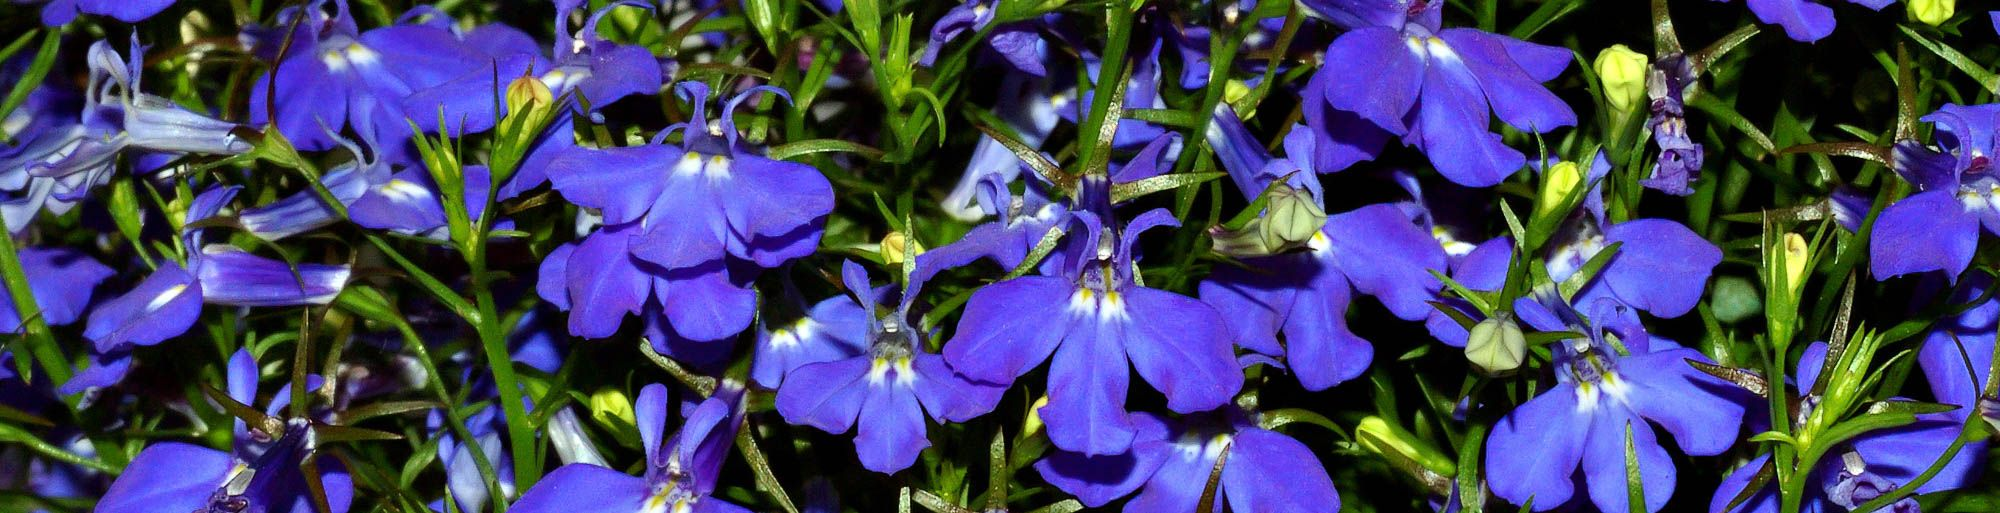 10 best blue plants for containers in the shade blue plants looking for some blue plants for containers in the shade this list of plants with beautiful blue flowers will help you find some you izmirmasajfo